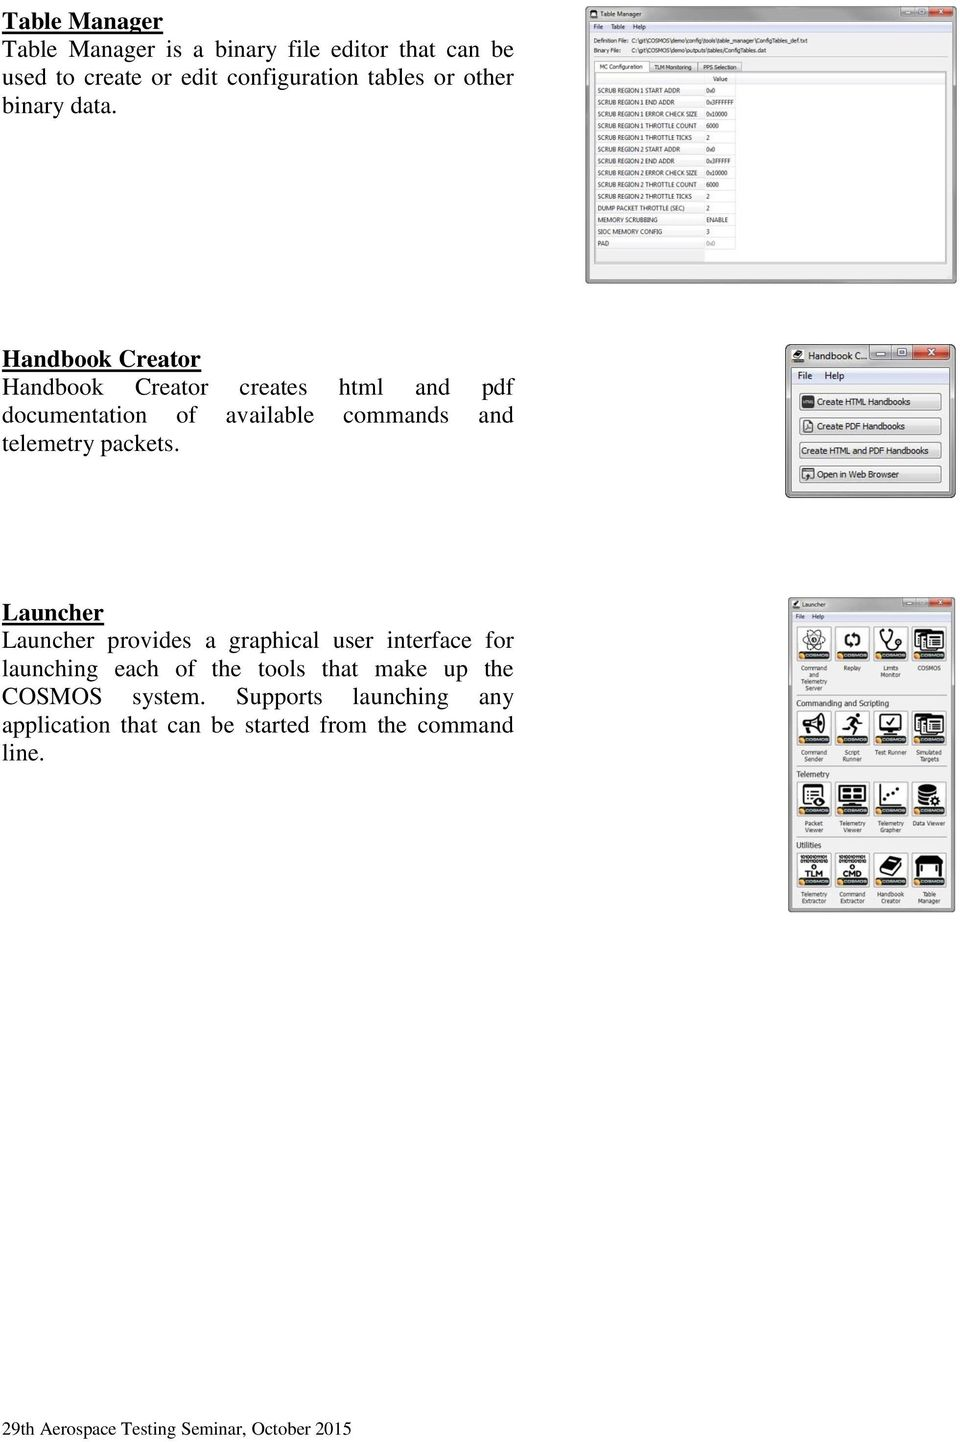 Handbook Creator Handbook Creator creates html and pdf documentation of available commands and telemetry